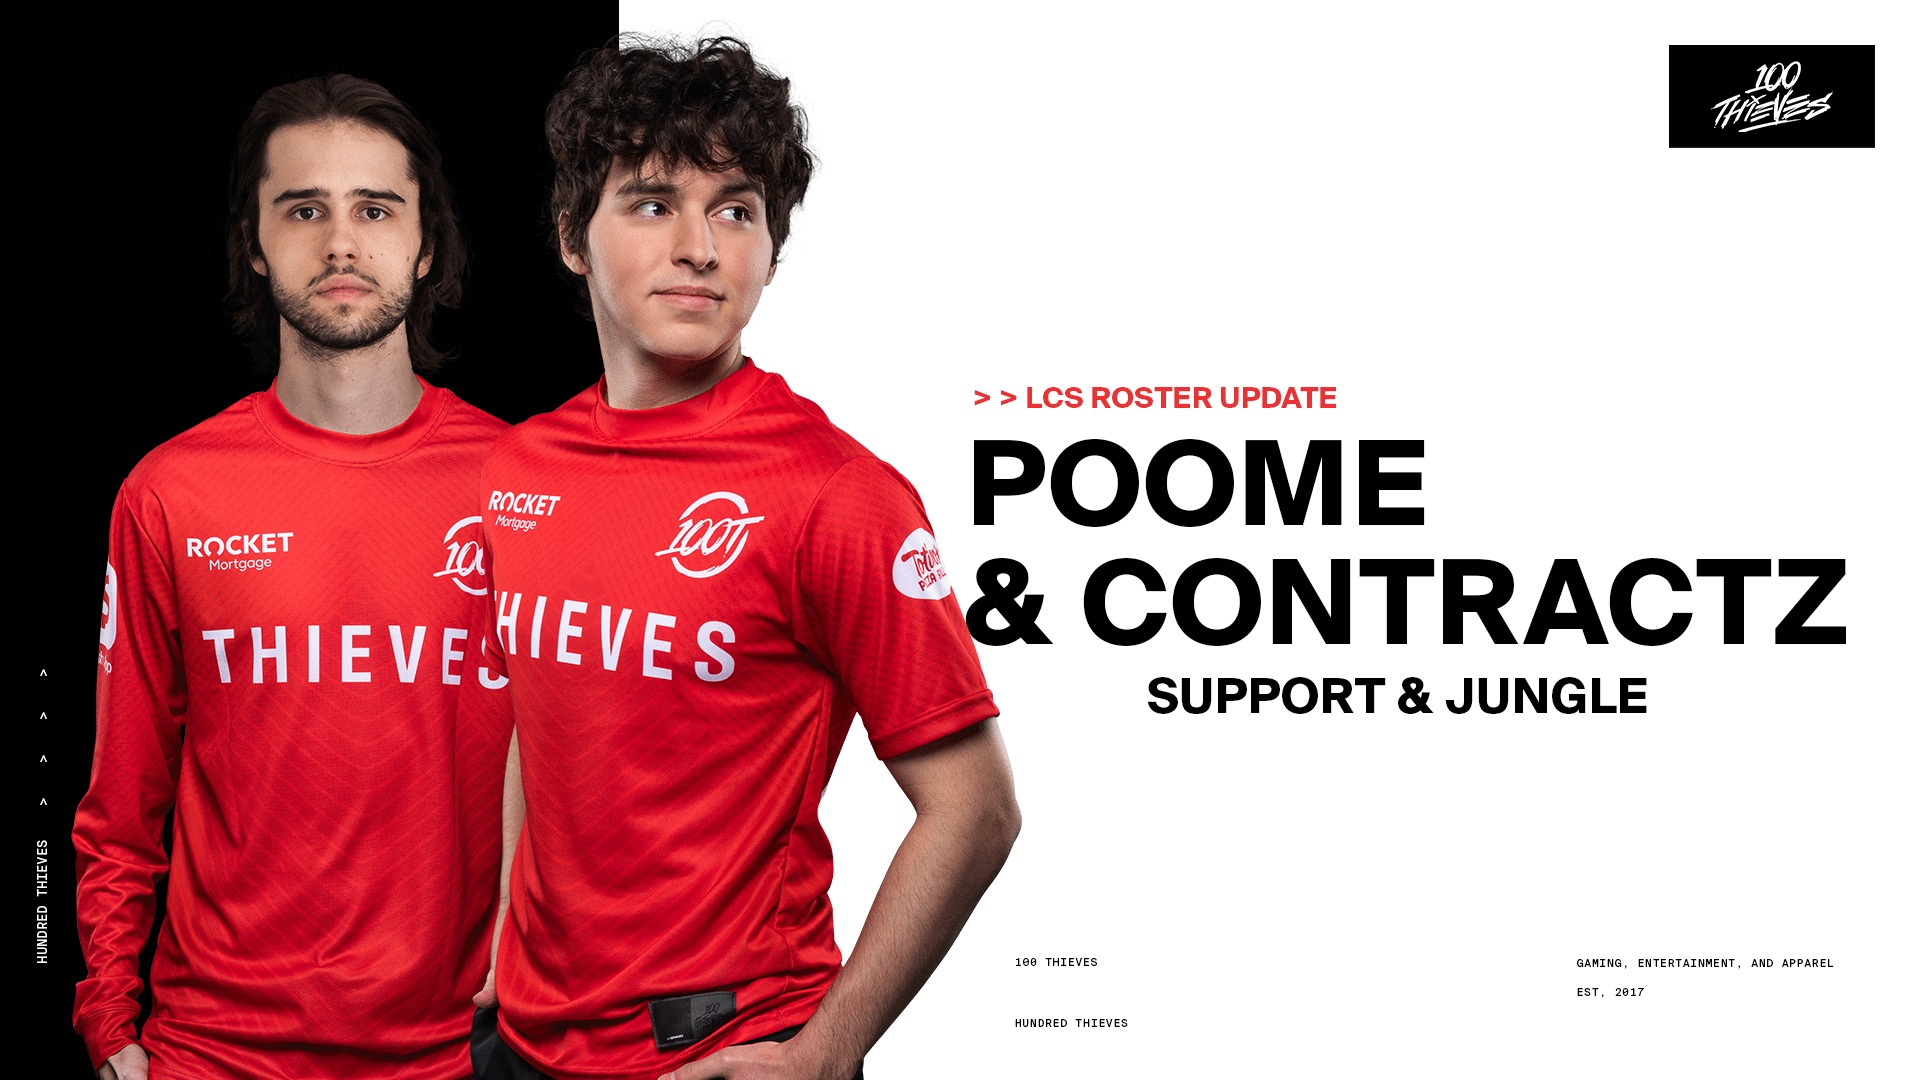 100 thieves poome et contractz